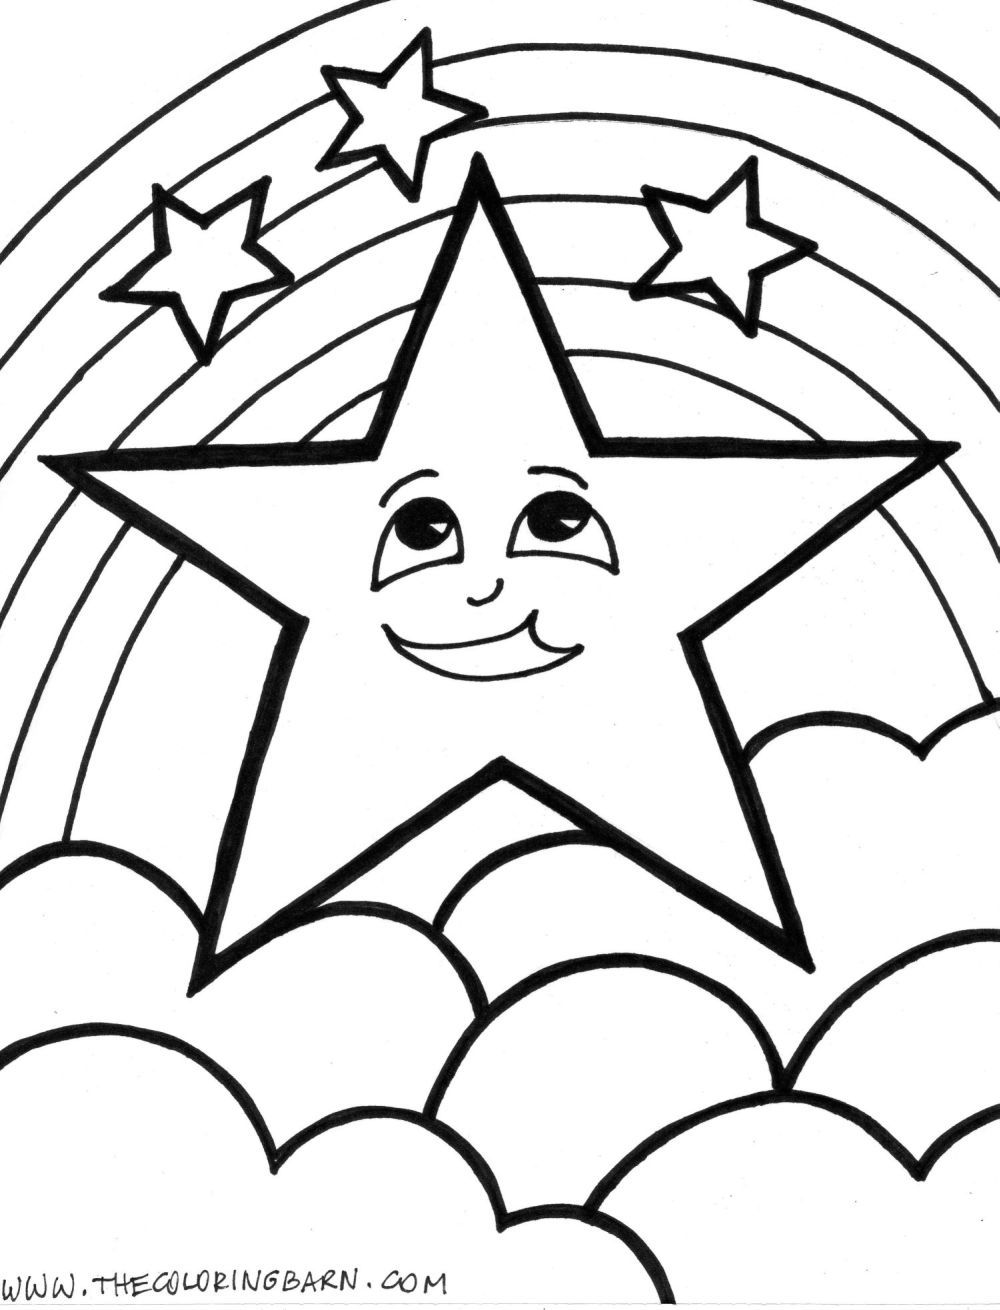 Rainbow colouring in pages - Star Coloring Page